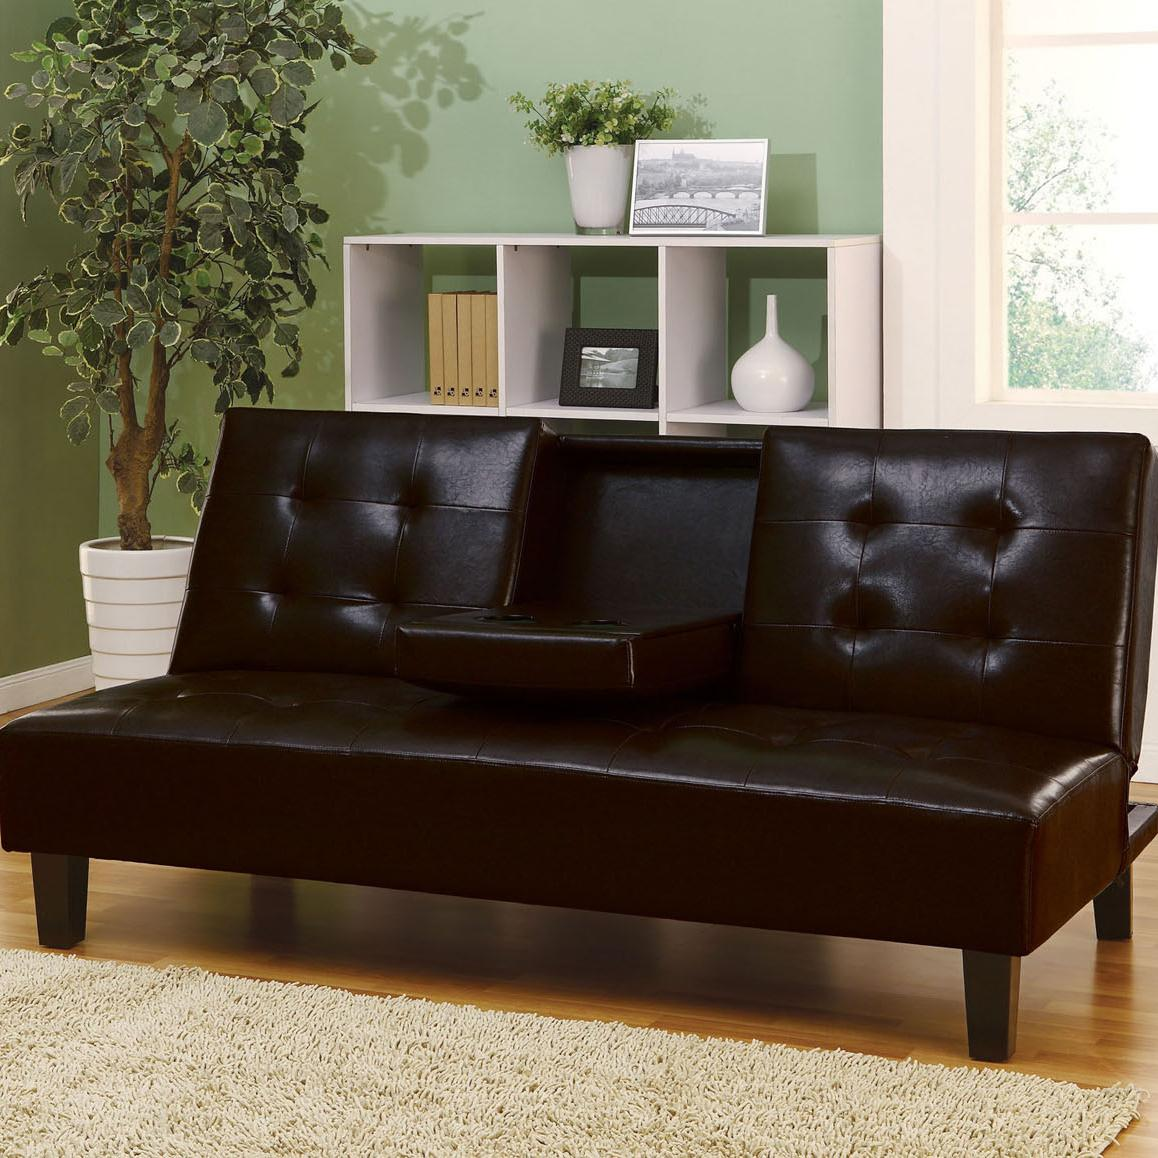 Acme Furniture Barron Adjustable Sofa with Cup Holders - Item Number: 05641